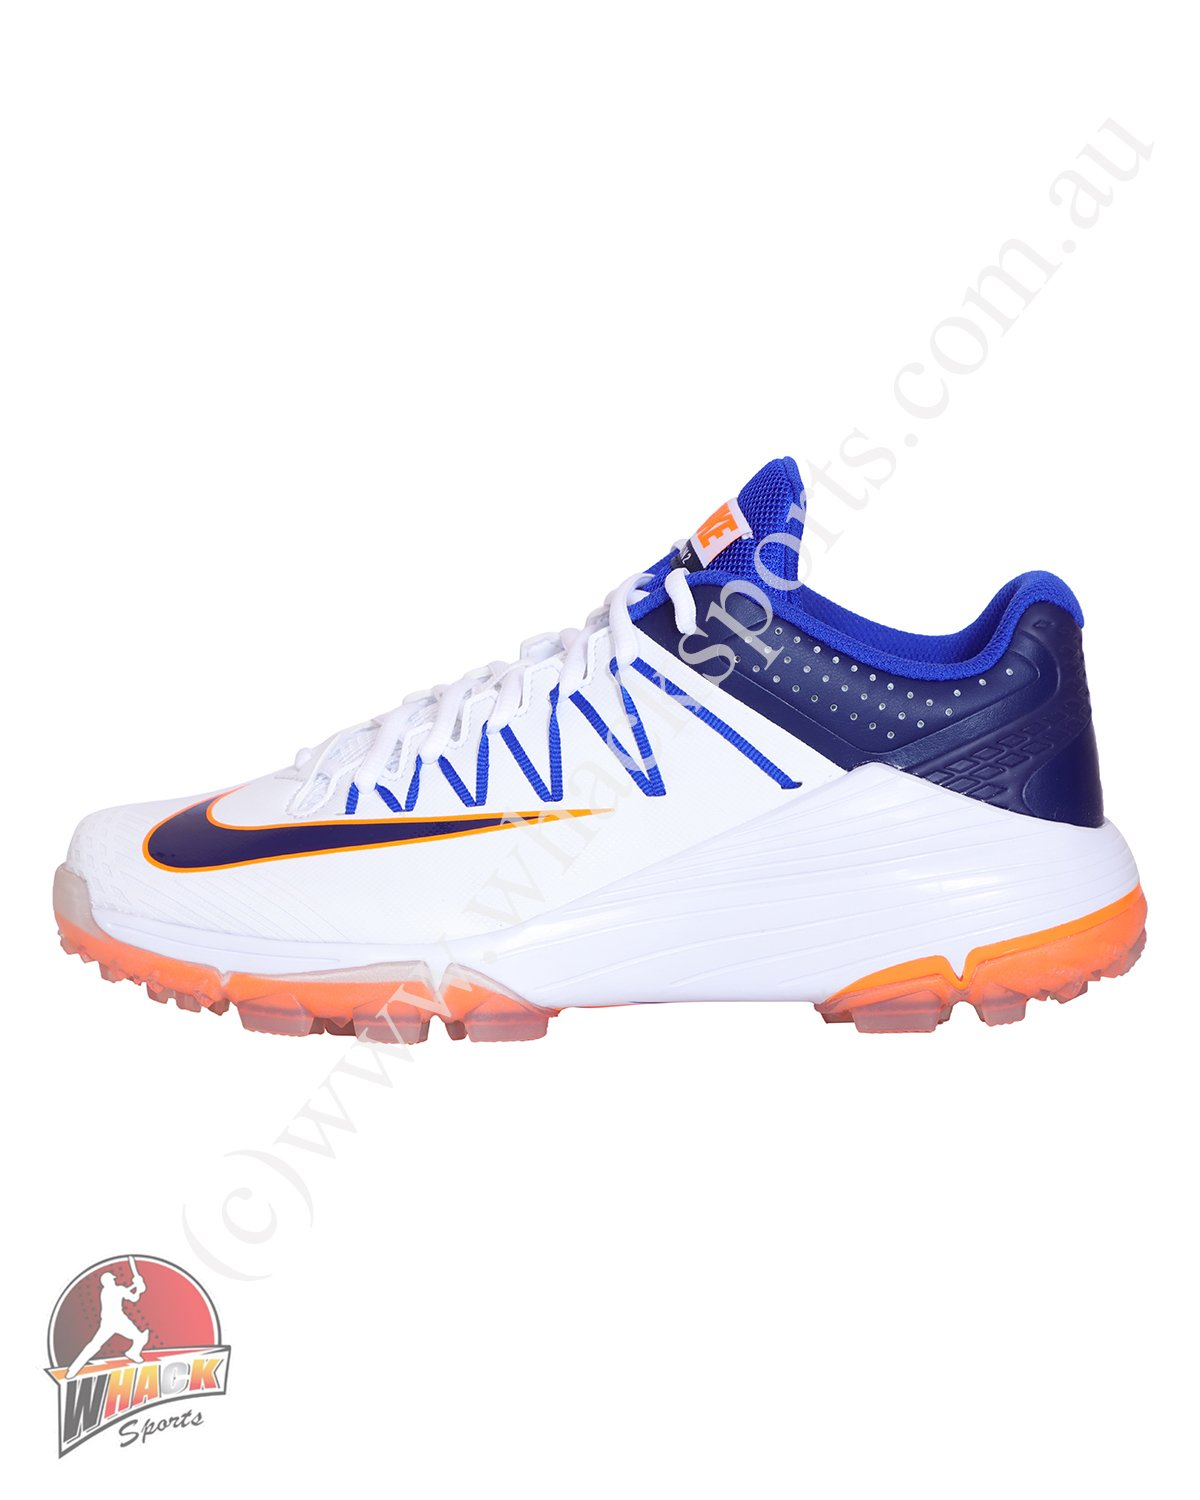 Nike Domain 2 Rubber Spikes Cricket